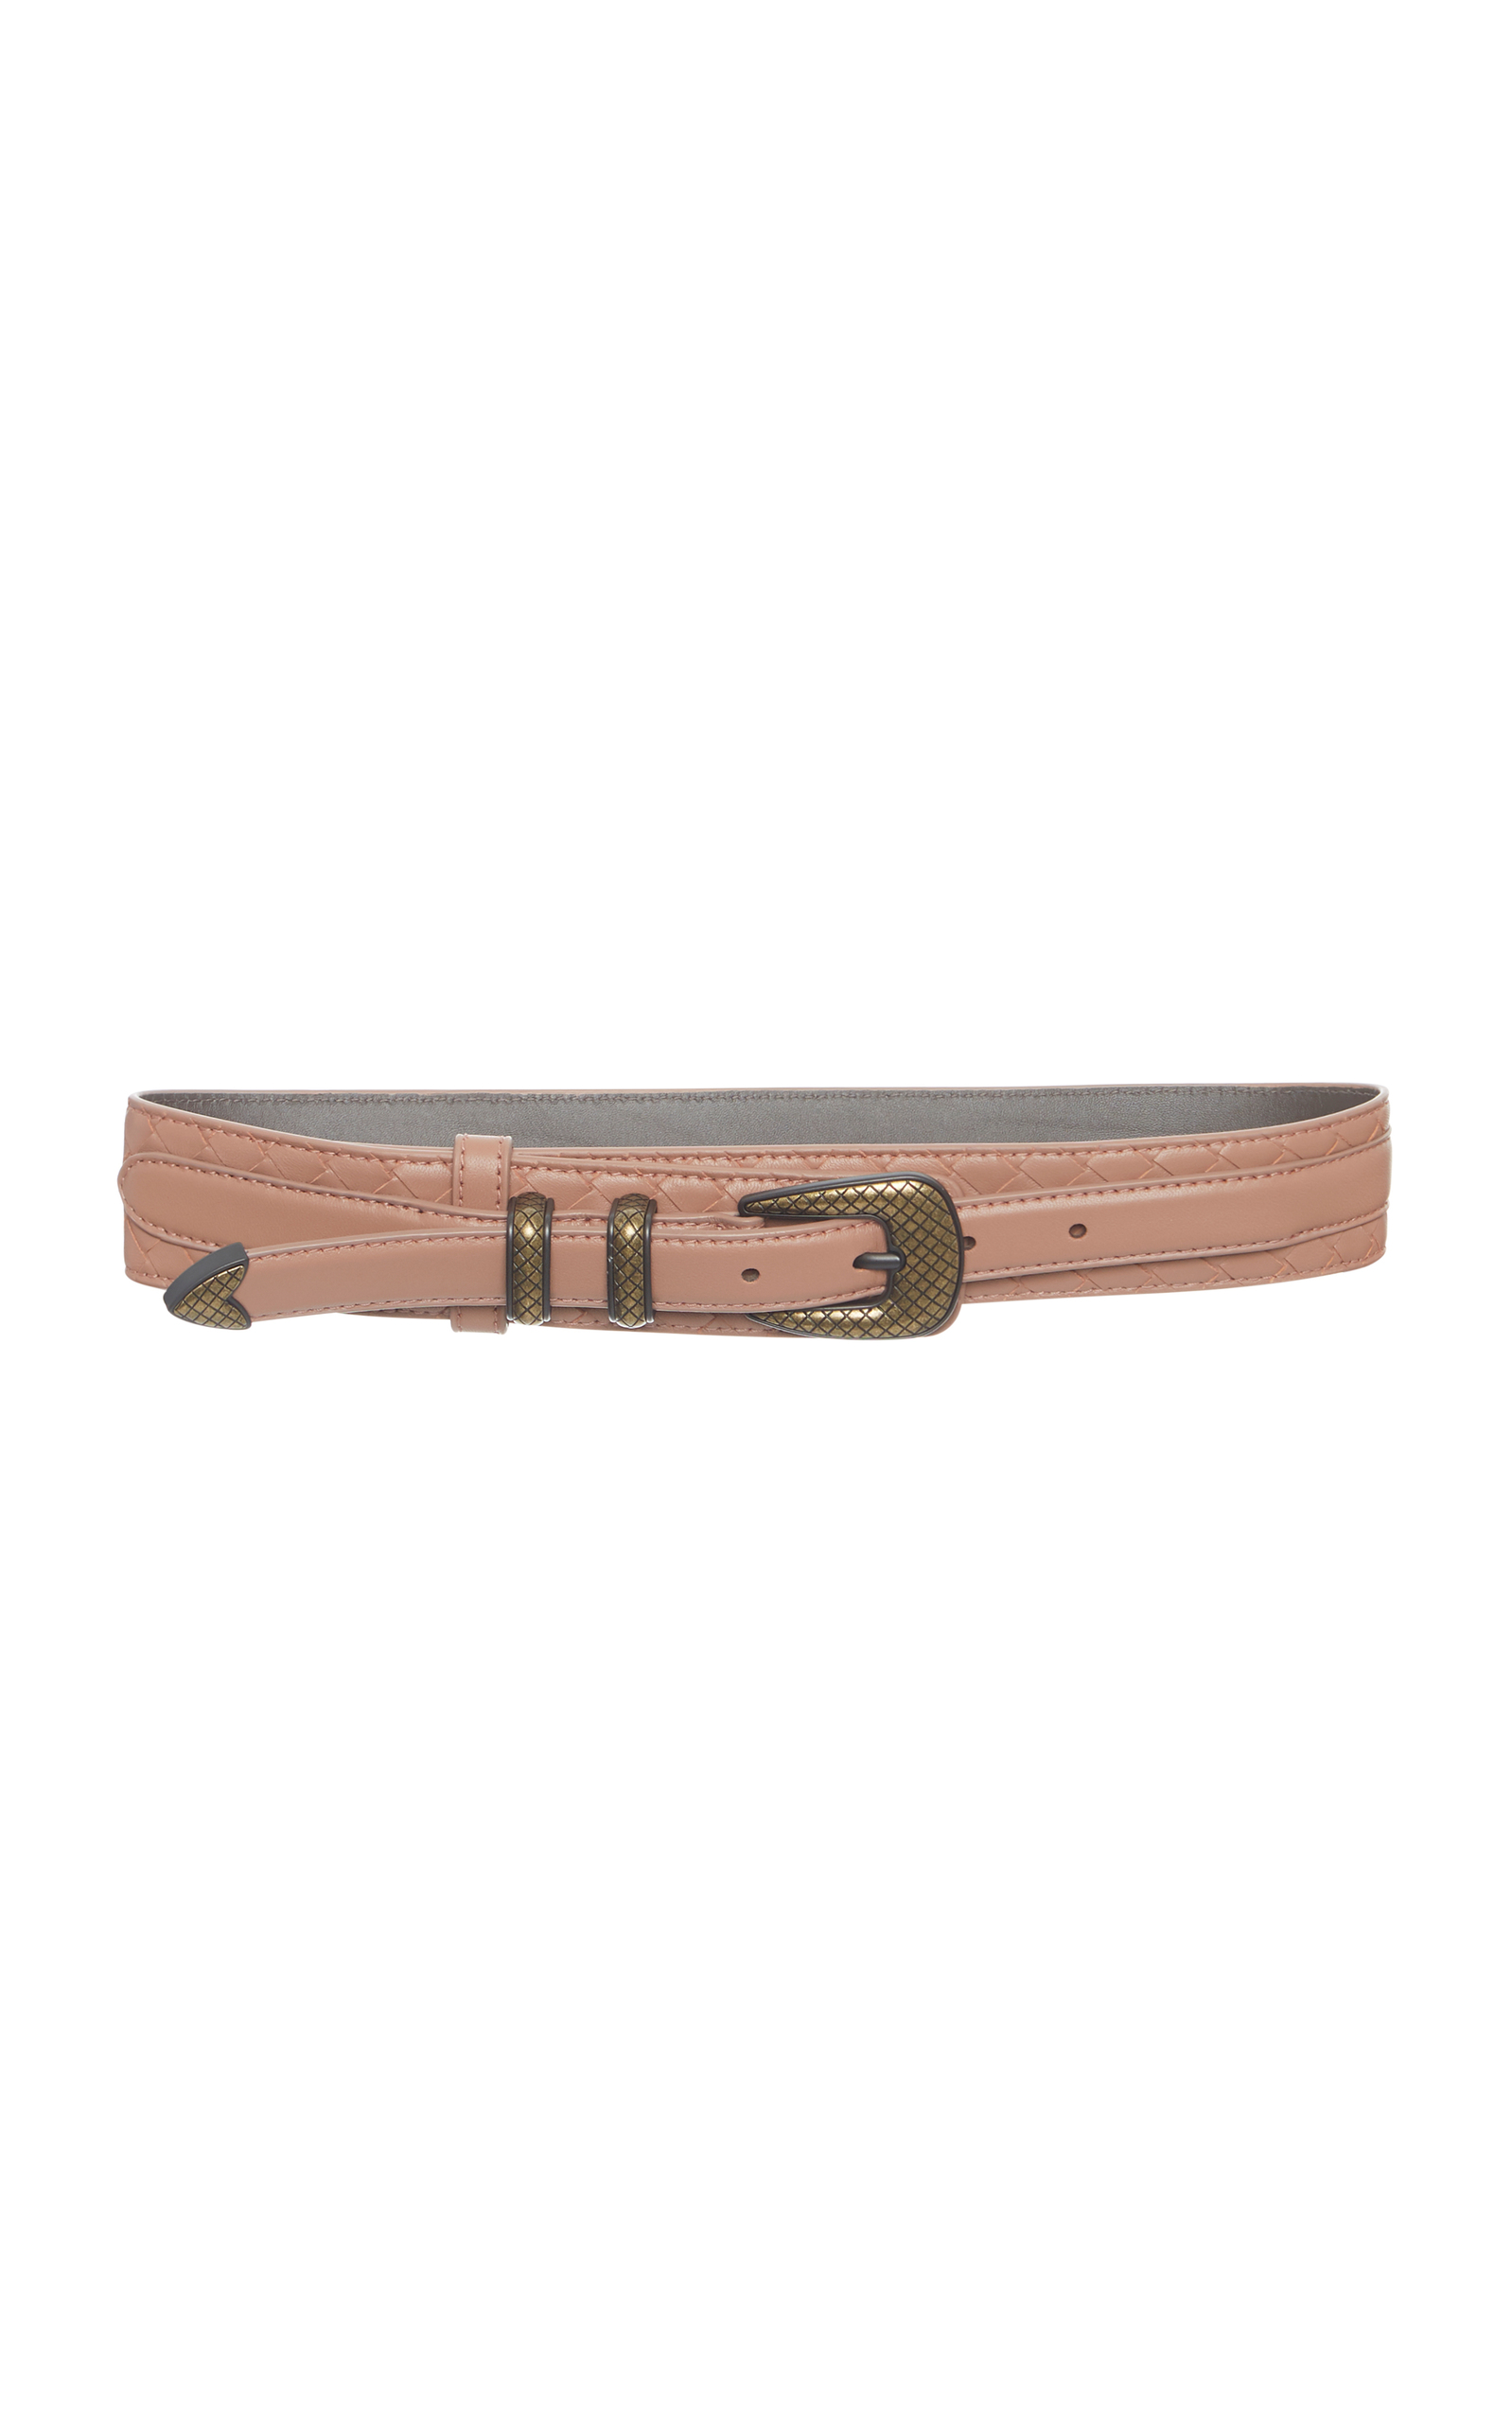 THE NAPPA BELT